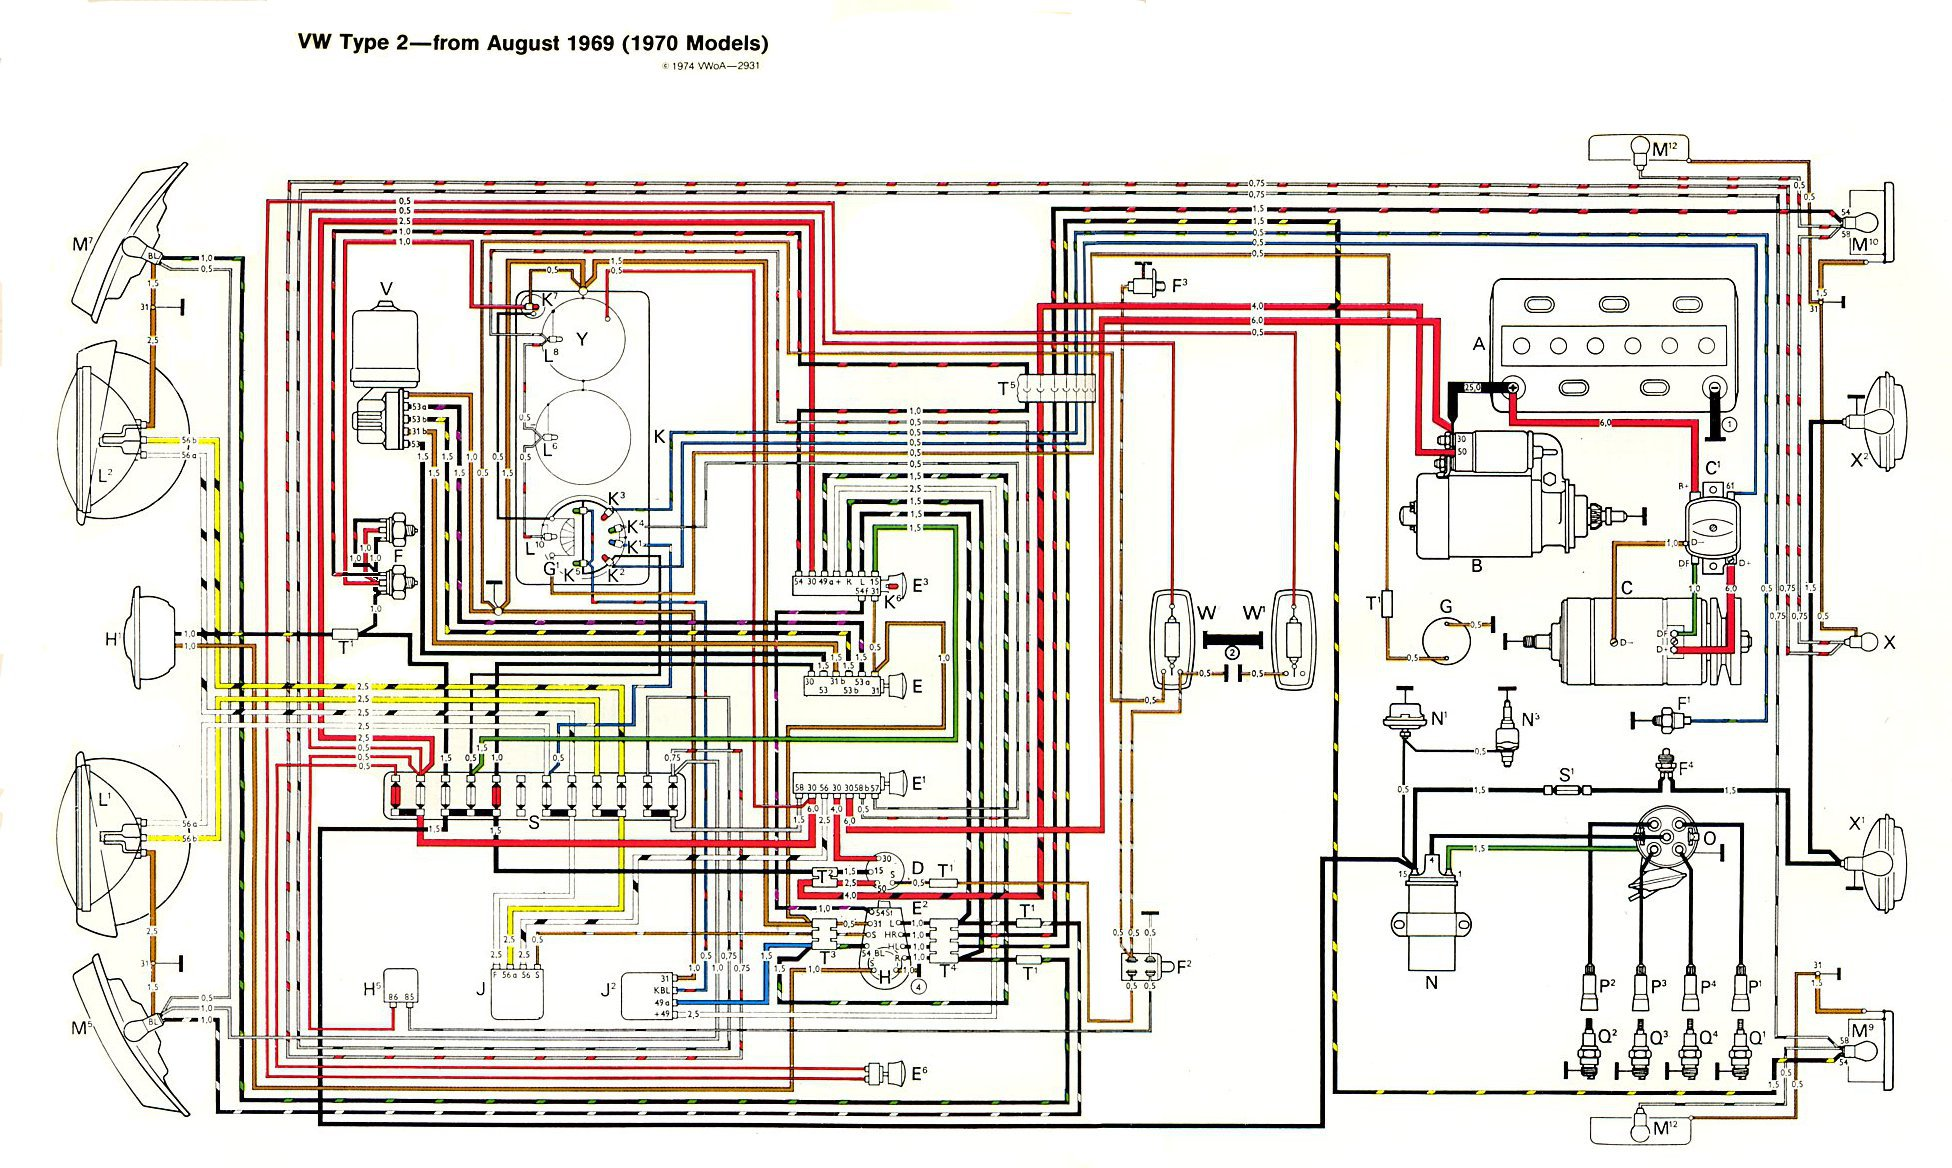 2005 Volkswagen Beetle Fuse Box Diagram Guide And Troubleshooting Vw Engine The Thesamba Com Type 2 Wiring Diagrams Super 05 Chart